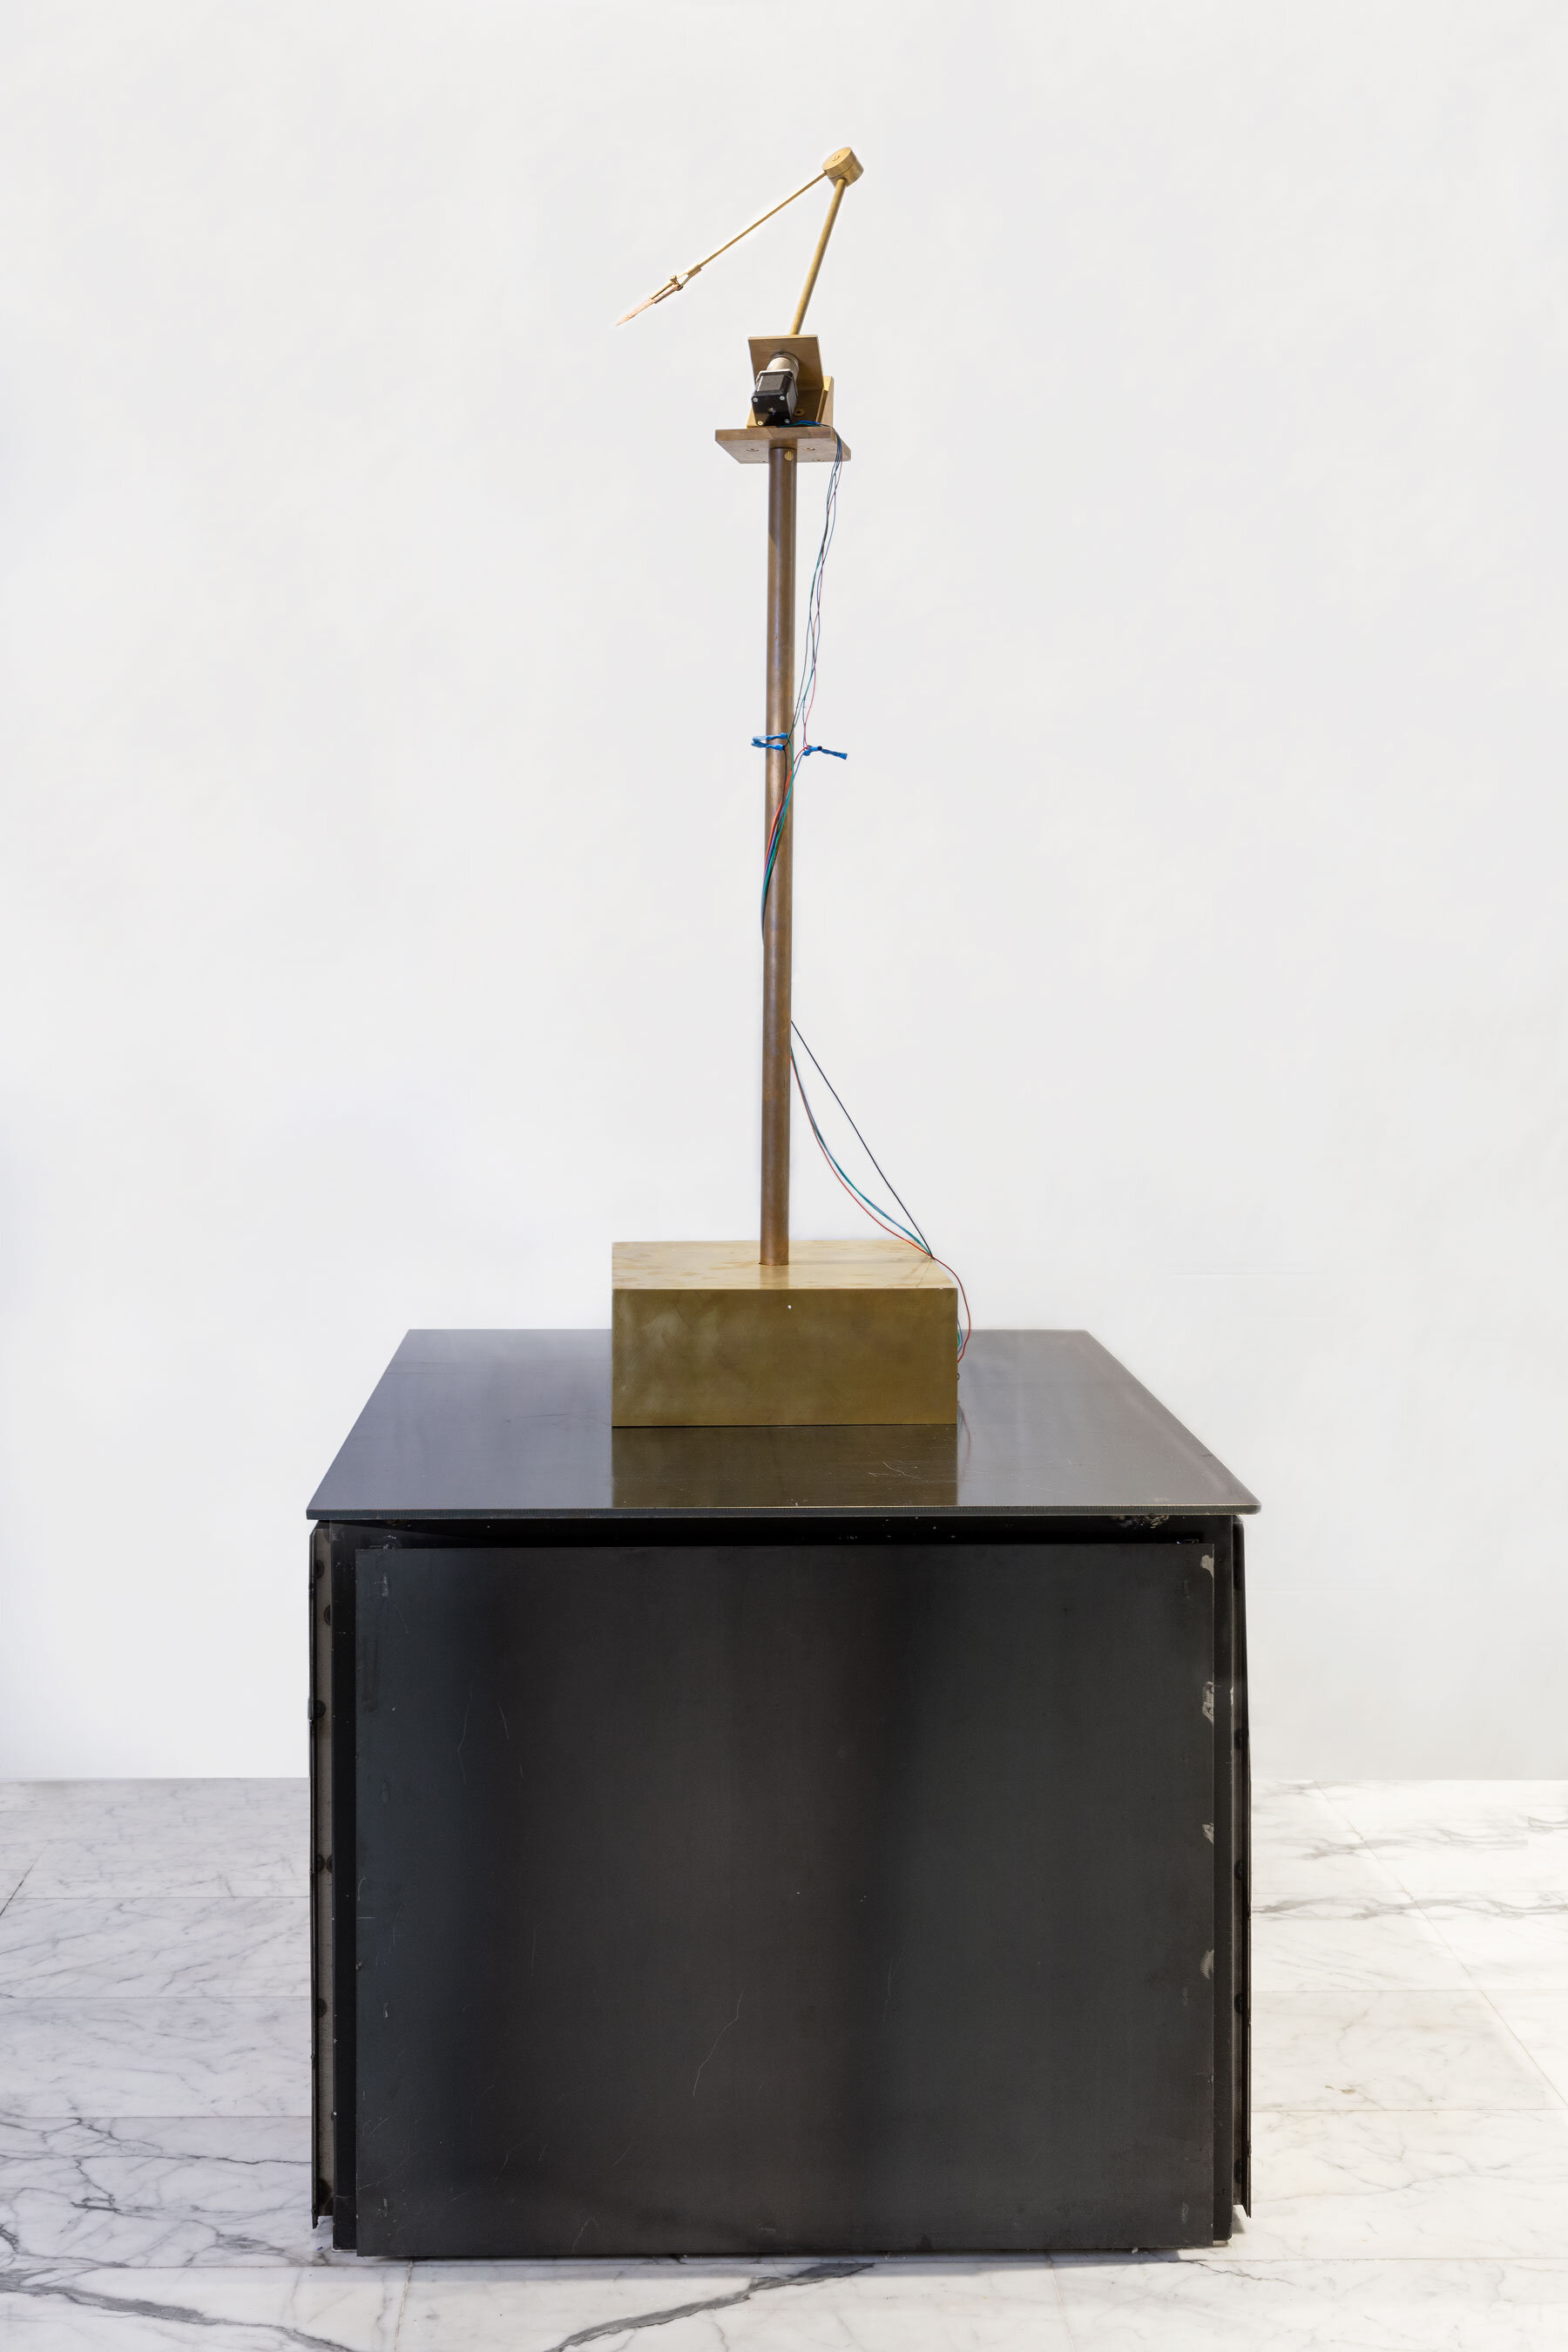 Atlas   Brass, rotation motor, Neolithic Dalton point, electronics, wood    120 x 40 x 40 cm    2019